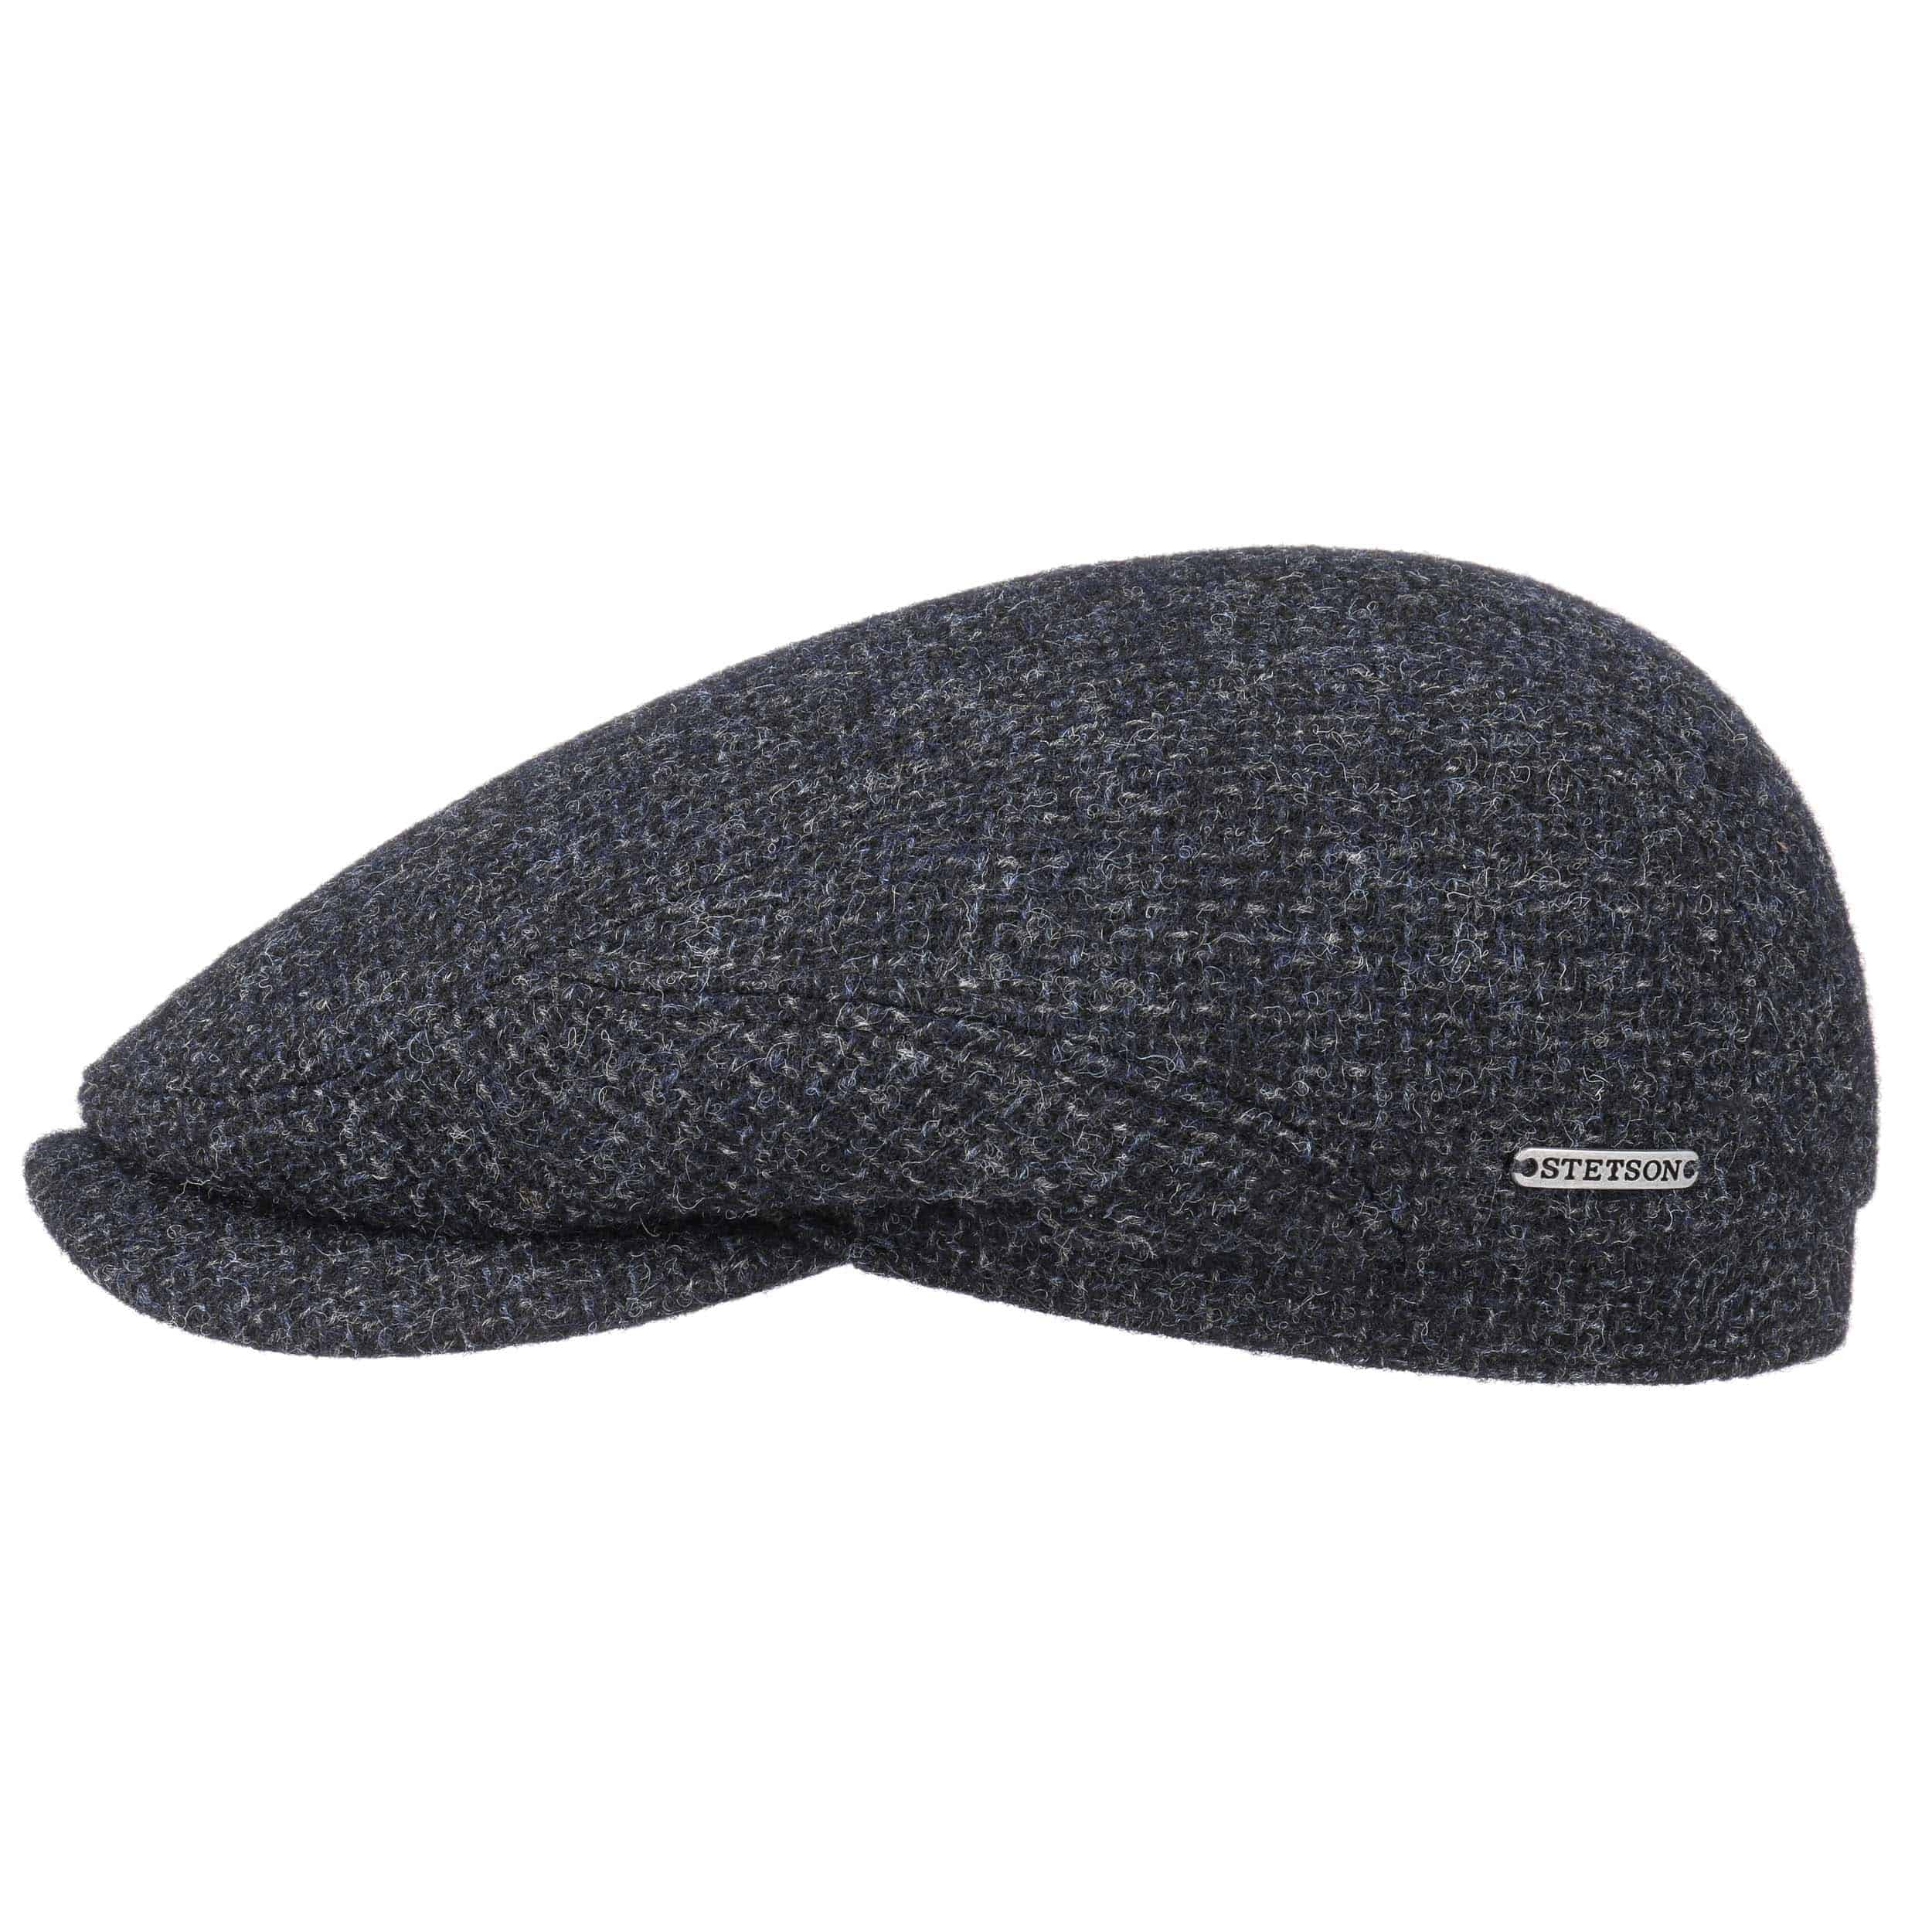 Belfast Tweed Flat Cap. by Stetson 44e37d3c355